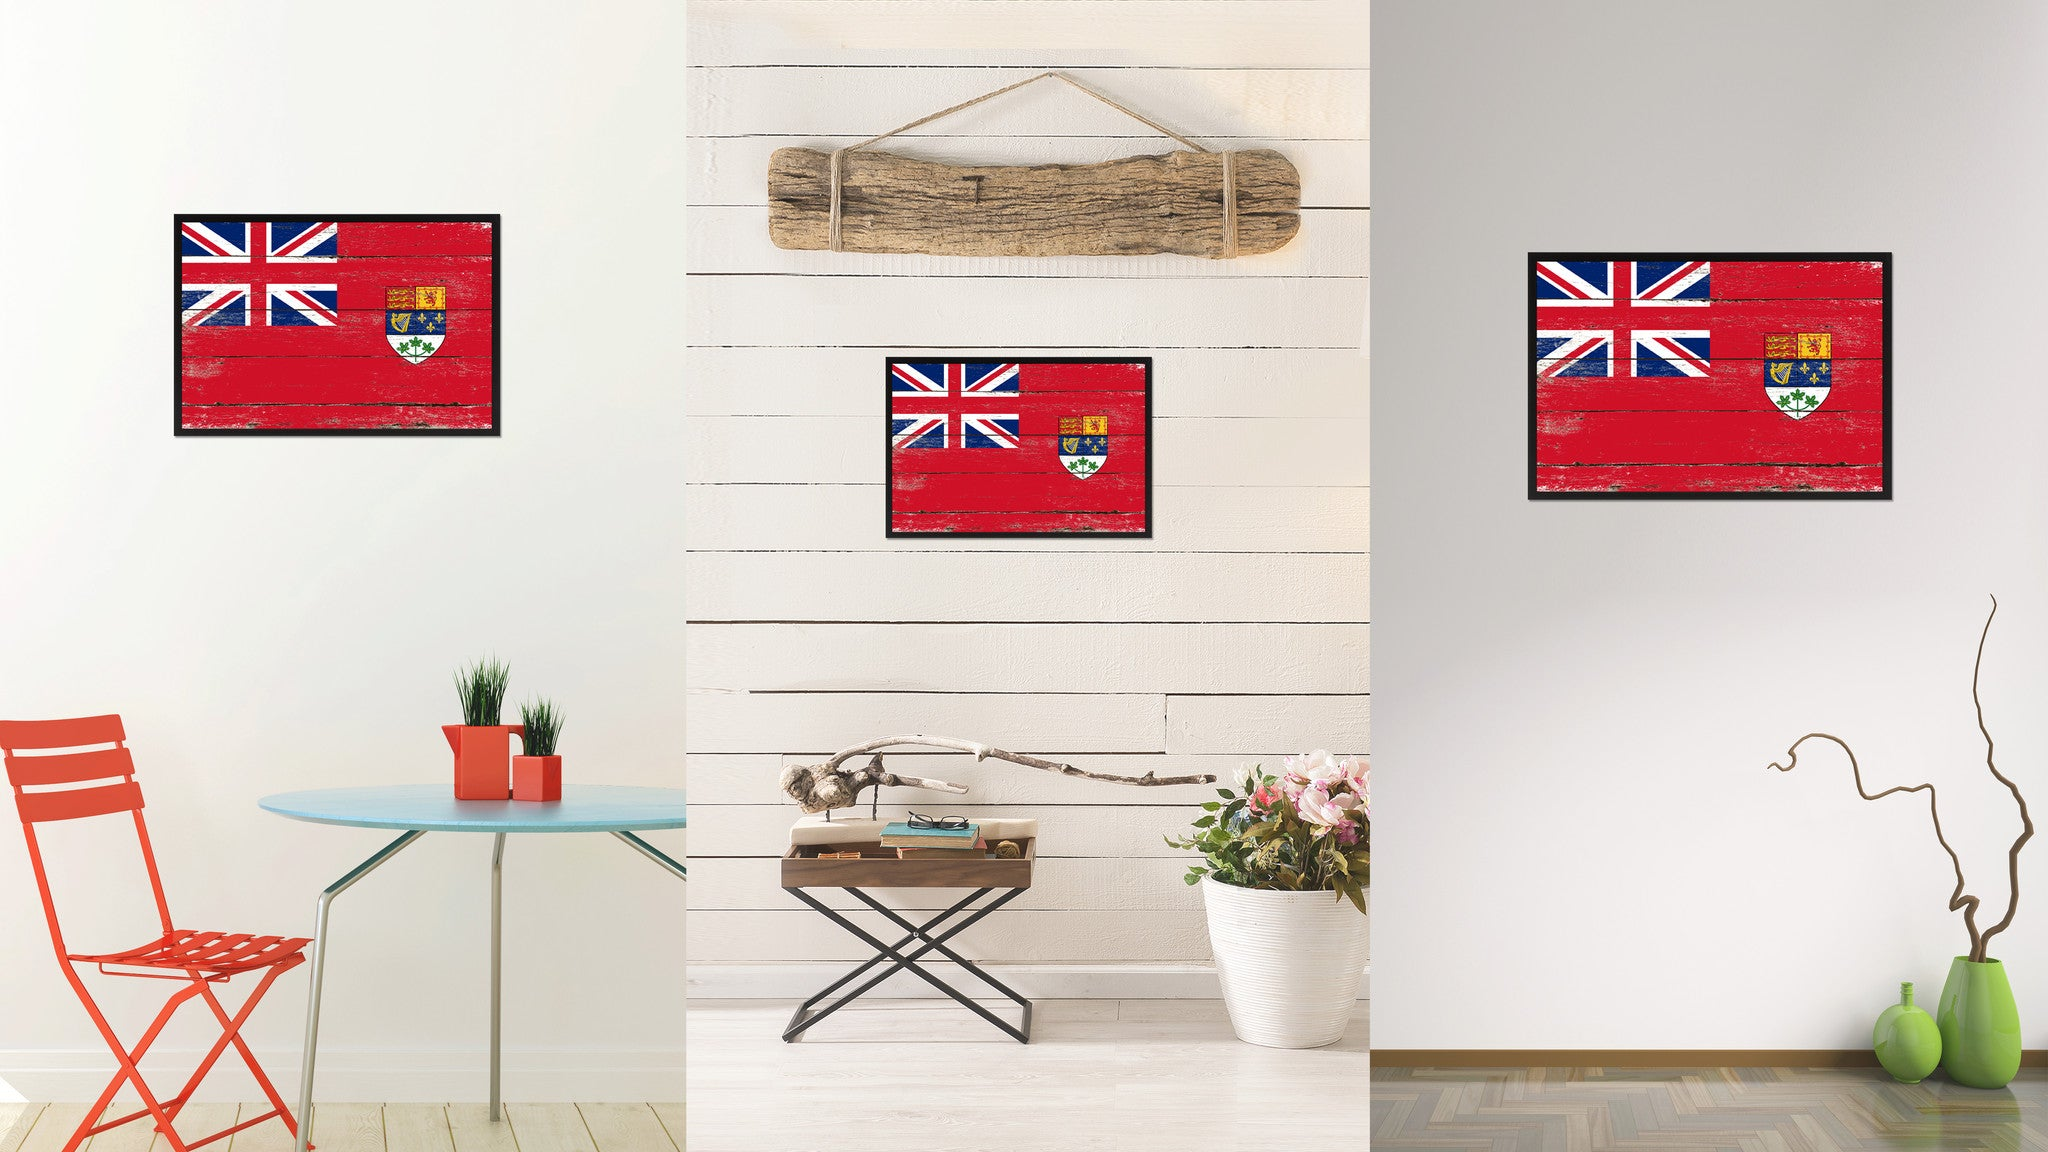 Canadian Red Ensign City Canada Country Vintage Flag Home Decor ...